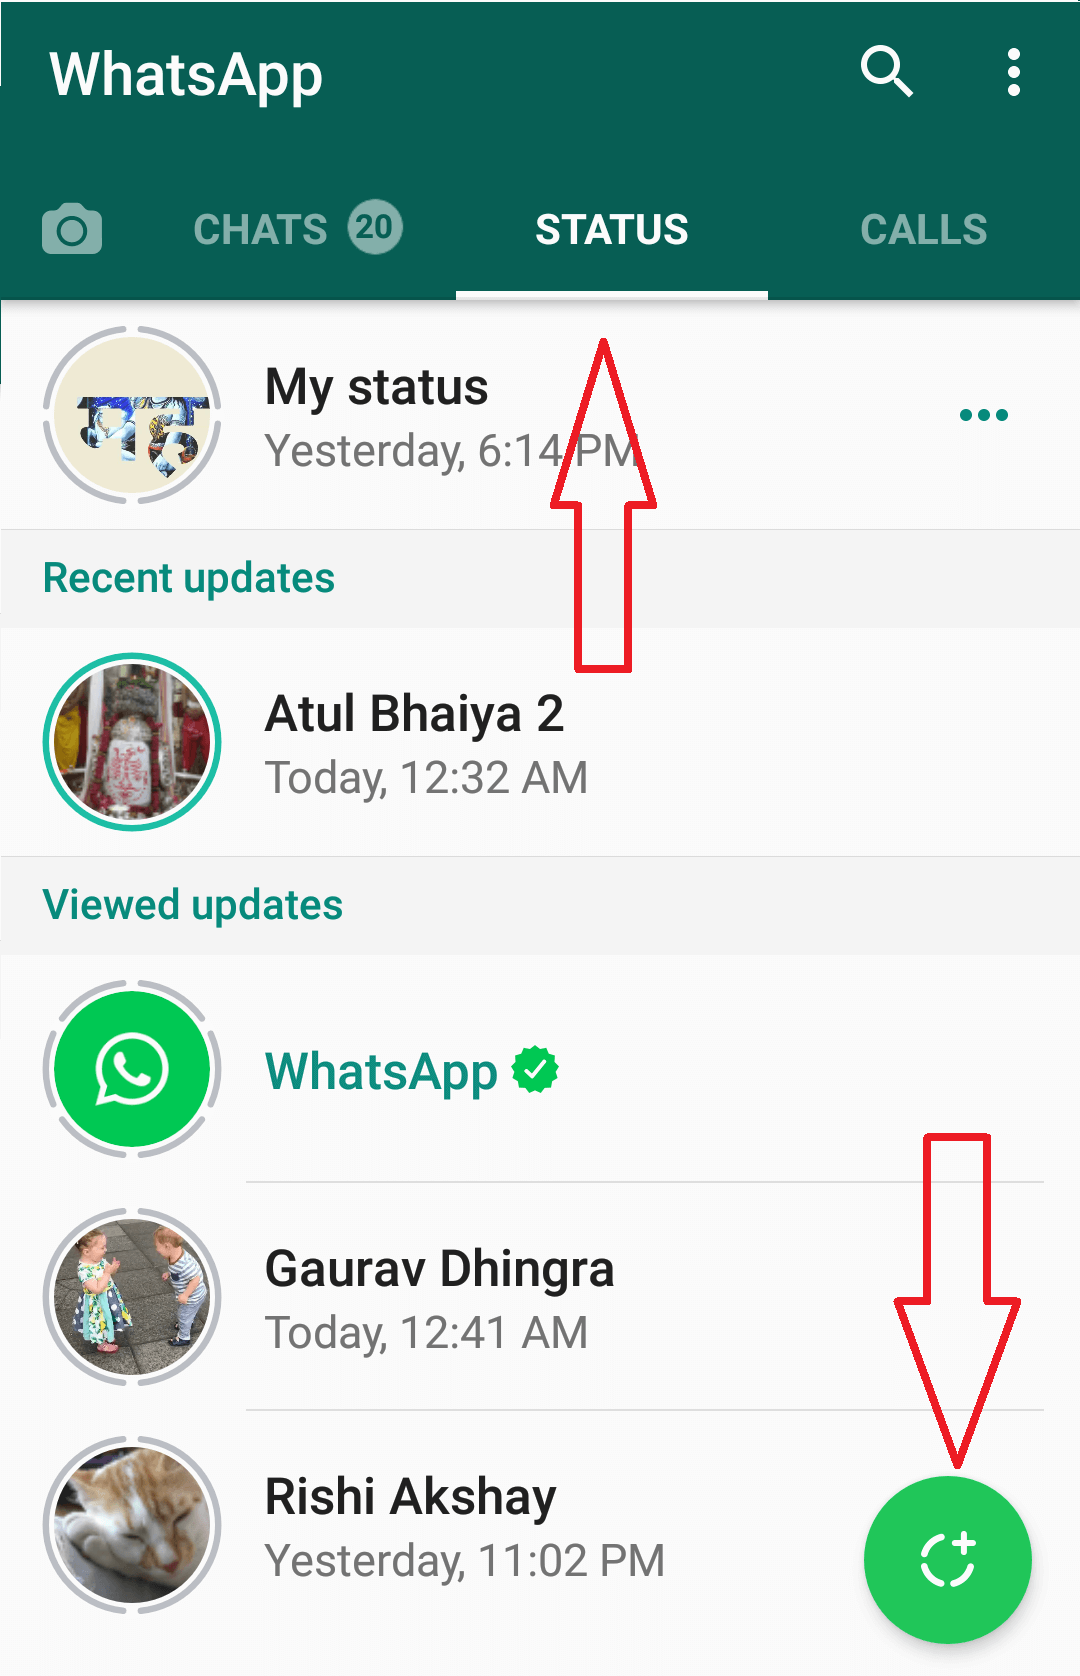 Whatsapp status function